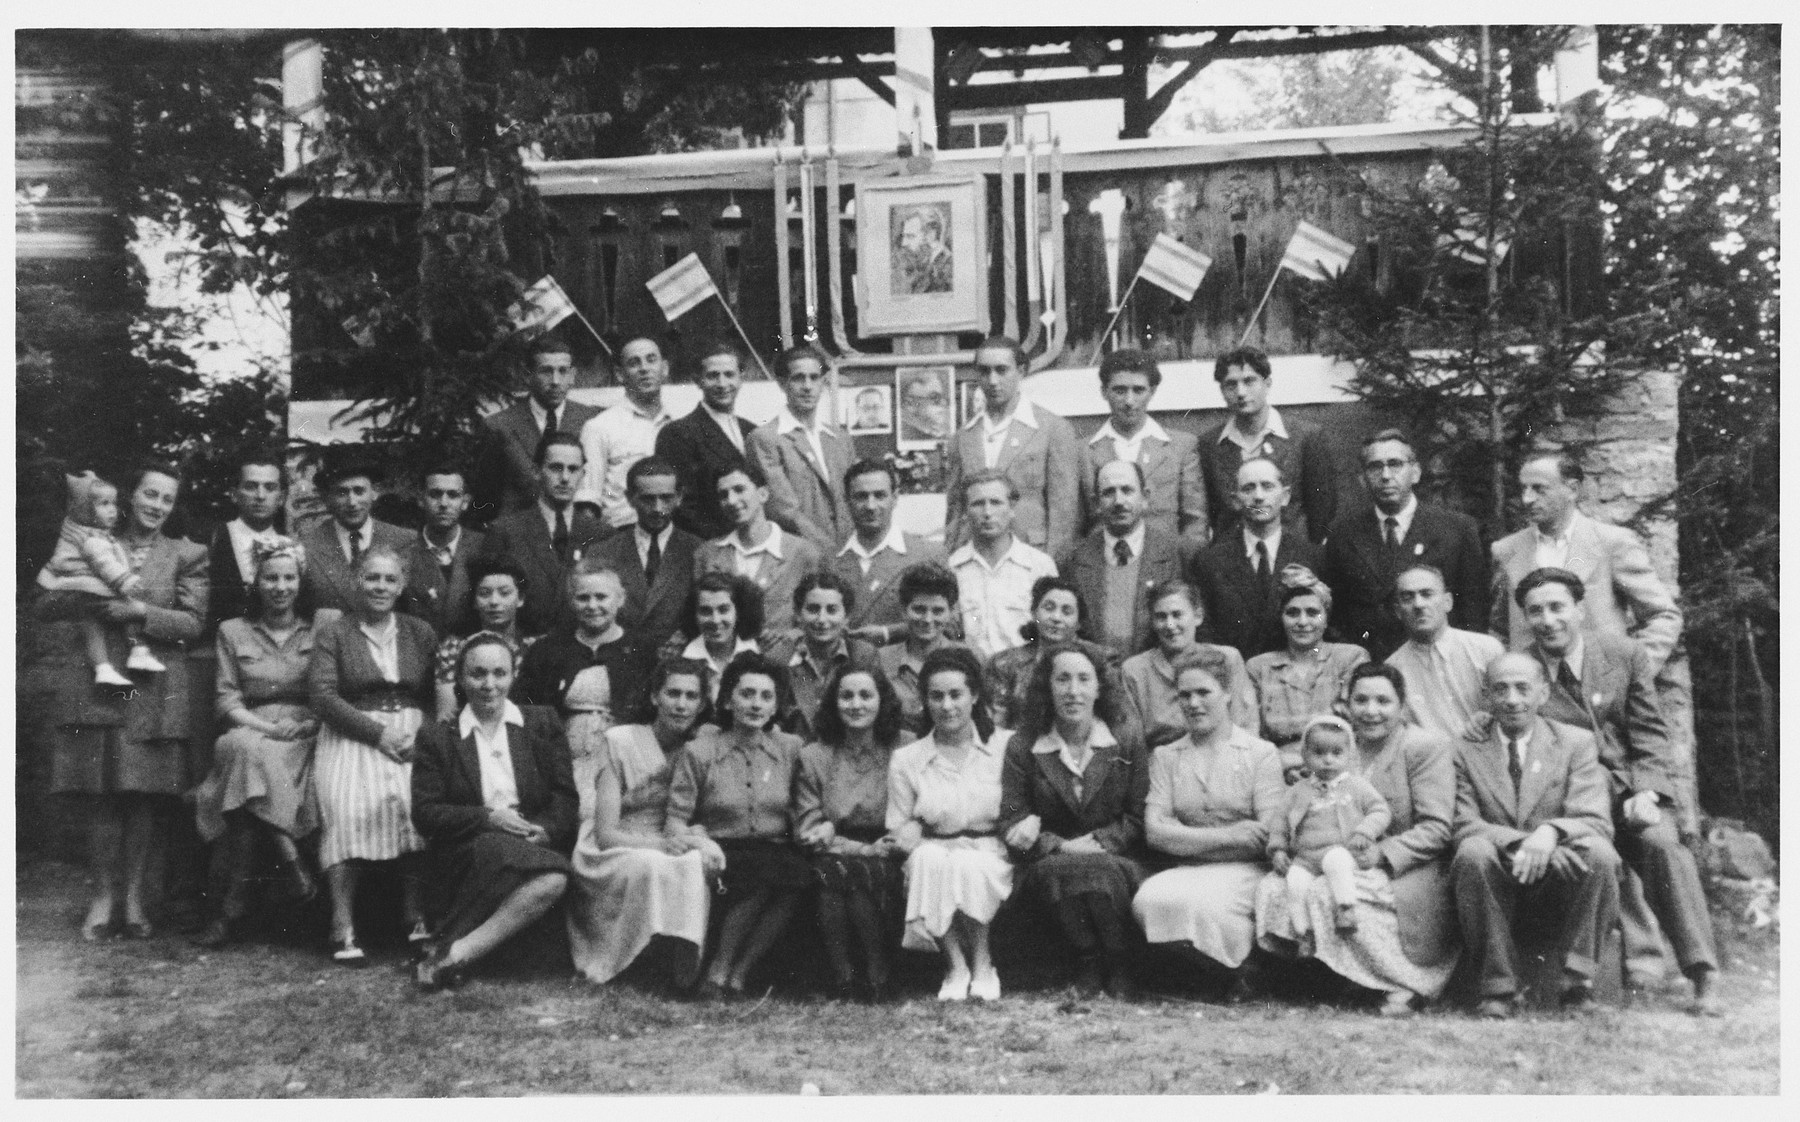 Group portrait of Jewish DPs outside the Wiesenhof DP center in Gnadenwalde, which is decorated with flags and portraits in celebration of the declaration of the State of Israel.